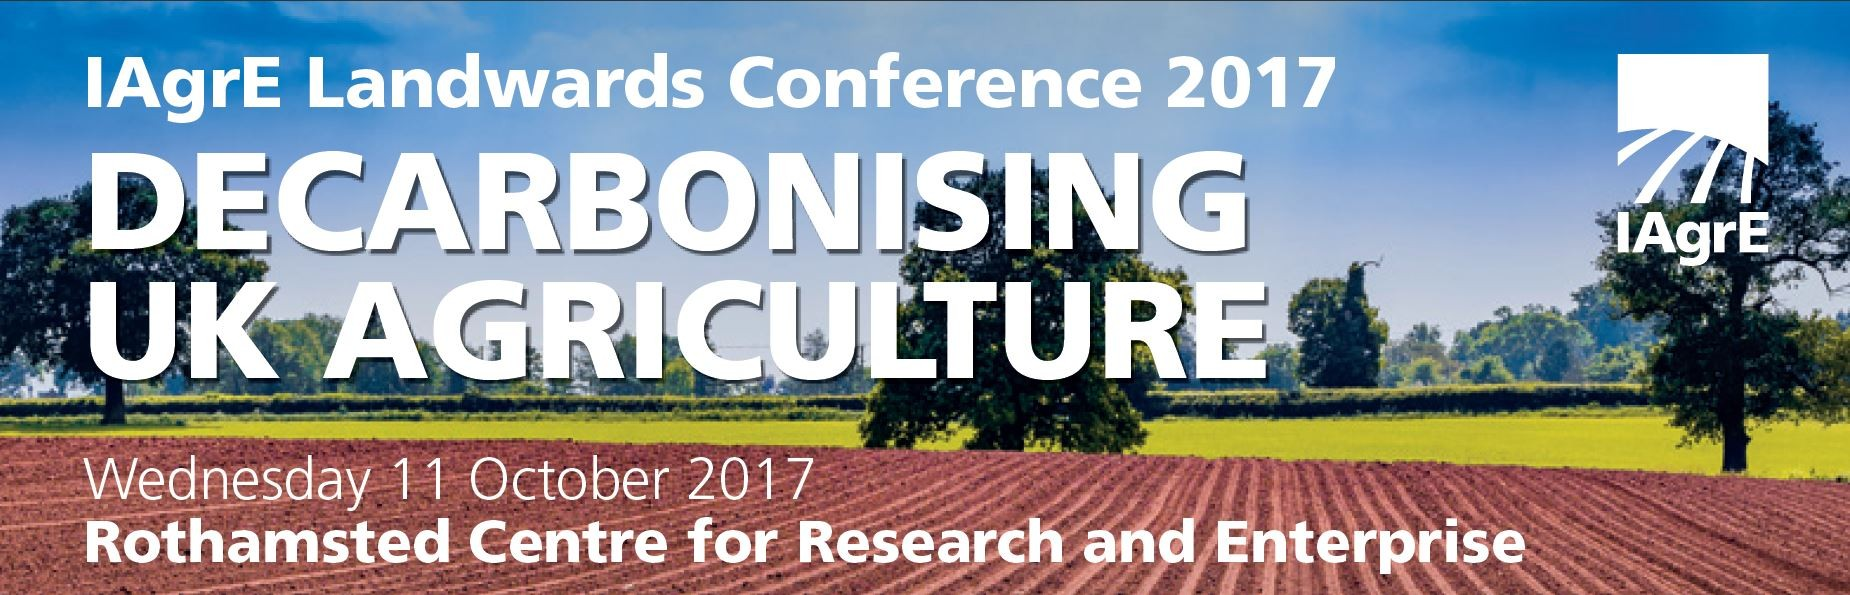 IAgrE Conference 2017 - Decarbonising UK Agriculture